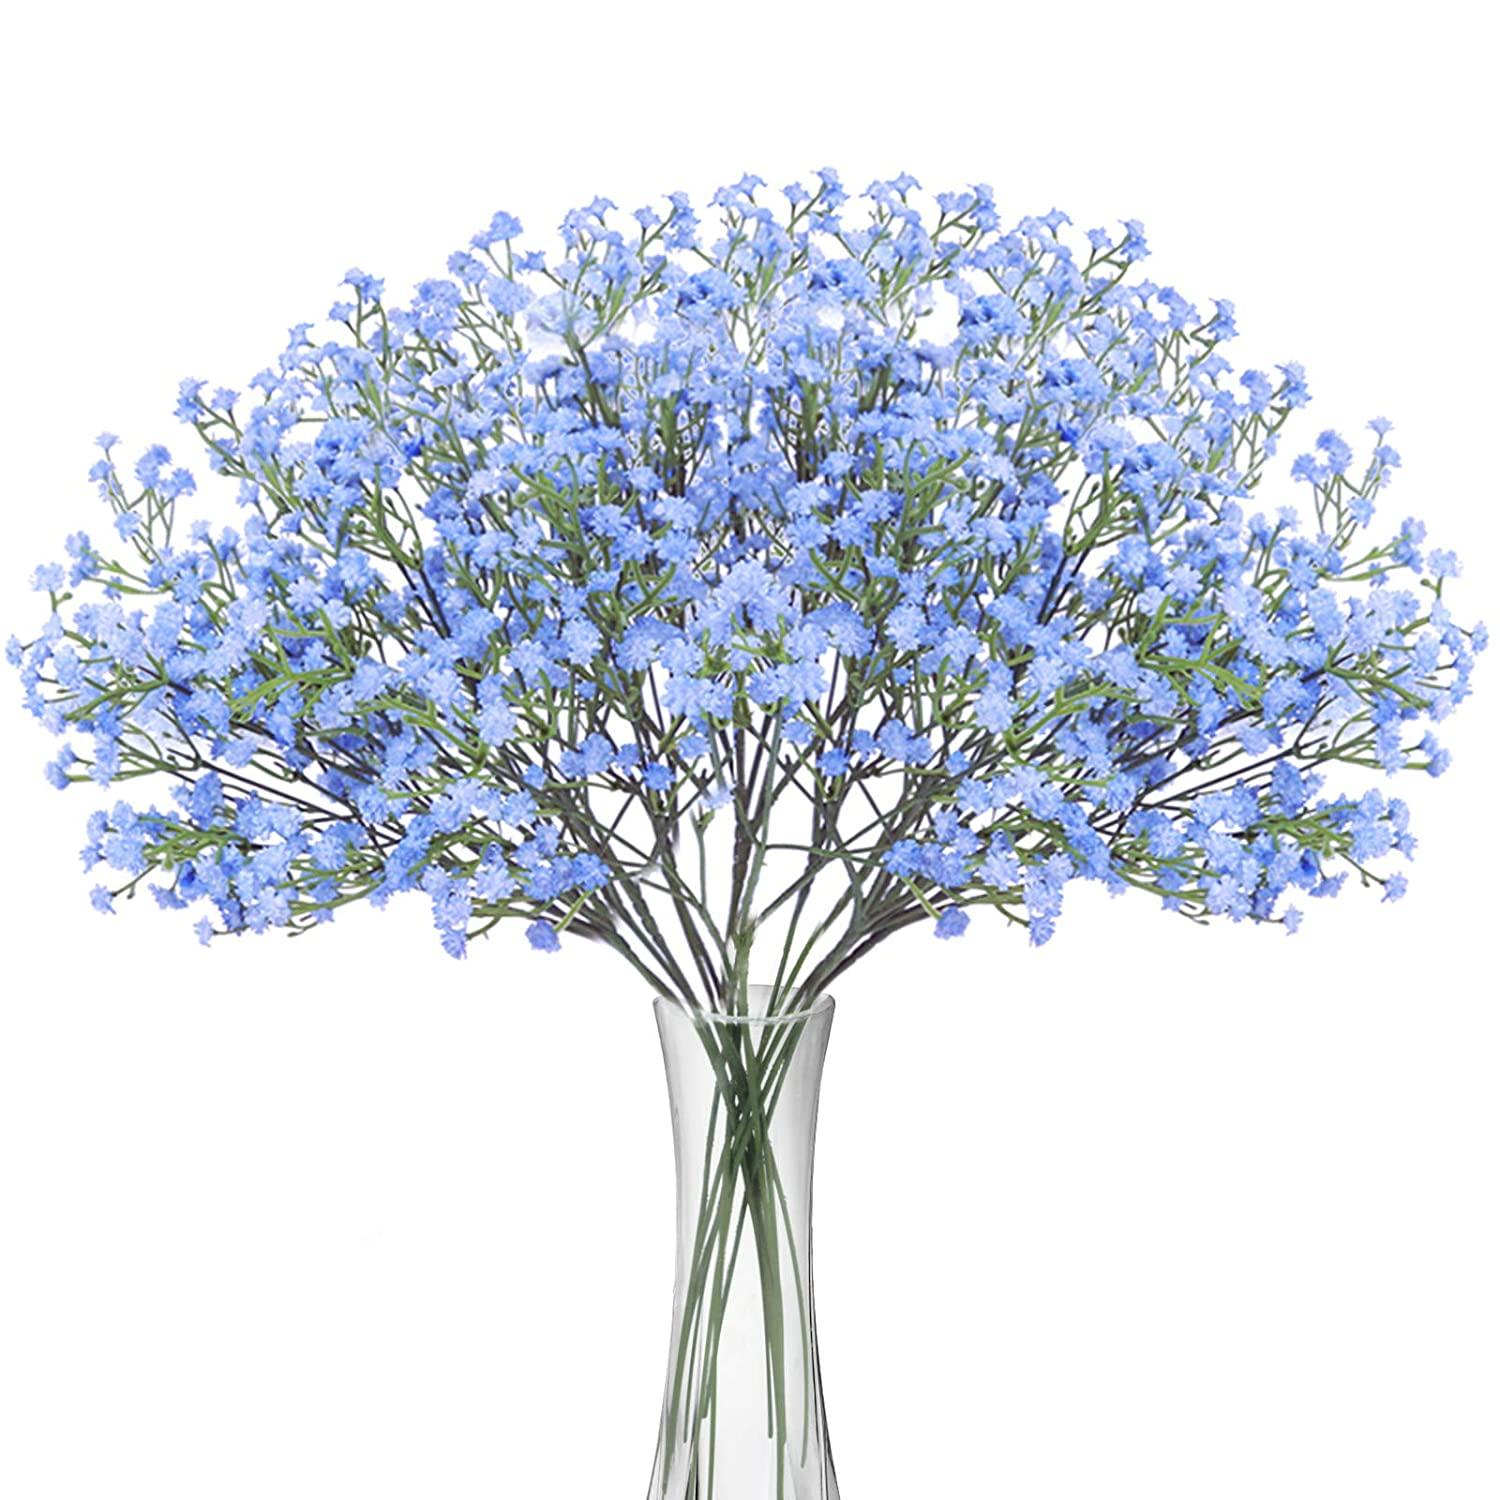 BOMAROLAN Artificial Baby Breath Flowers Fake Gypsophila Bouquets 12 Pcs Fake Real Touch Flowers for Wedding Decor DIY Home Party(Blue)